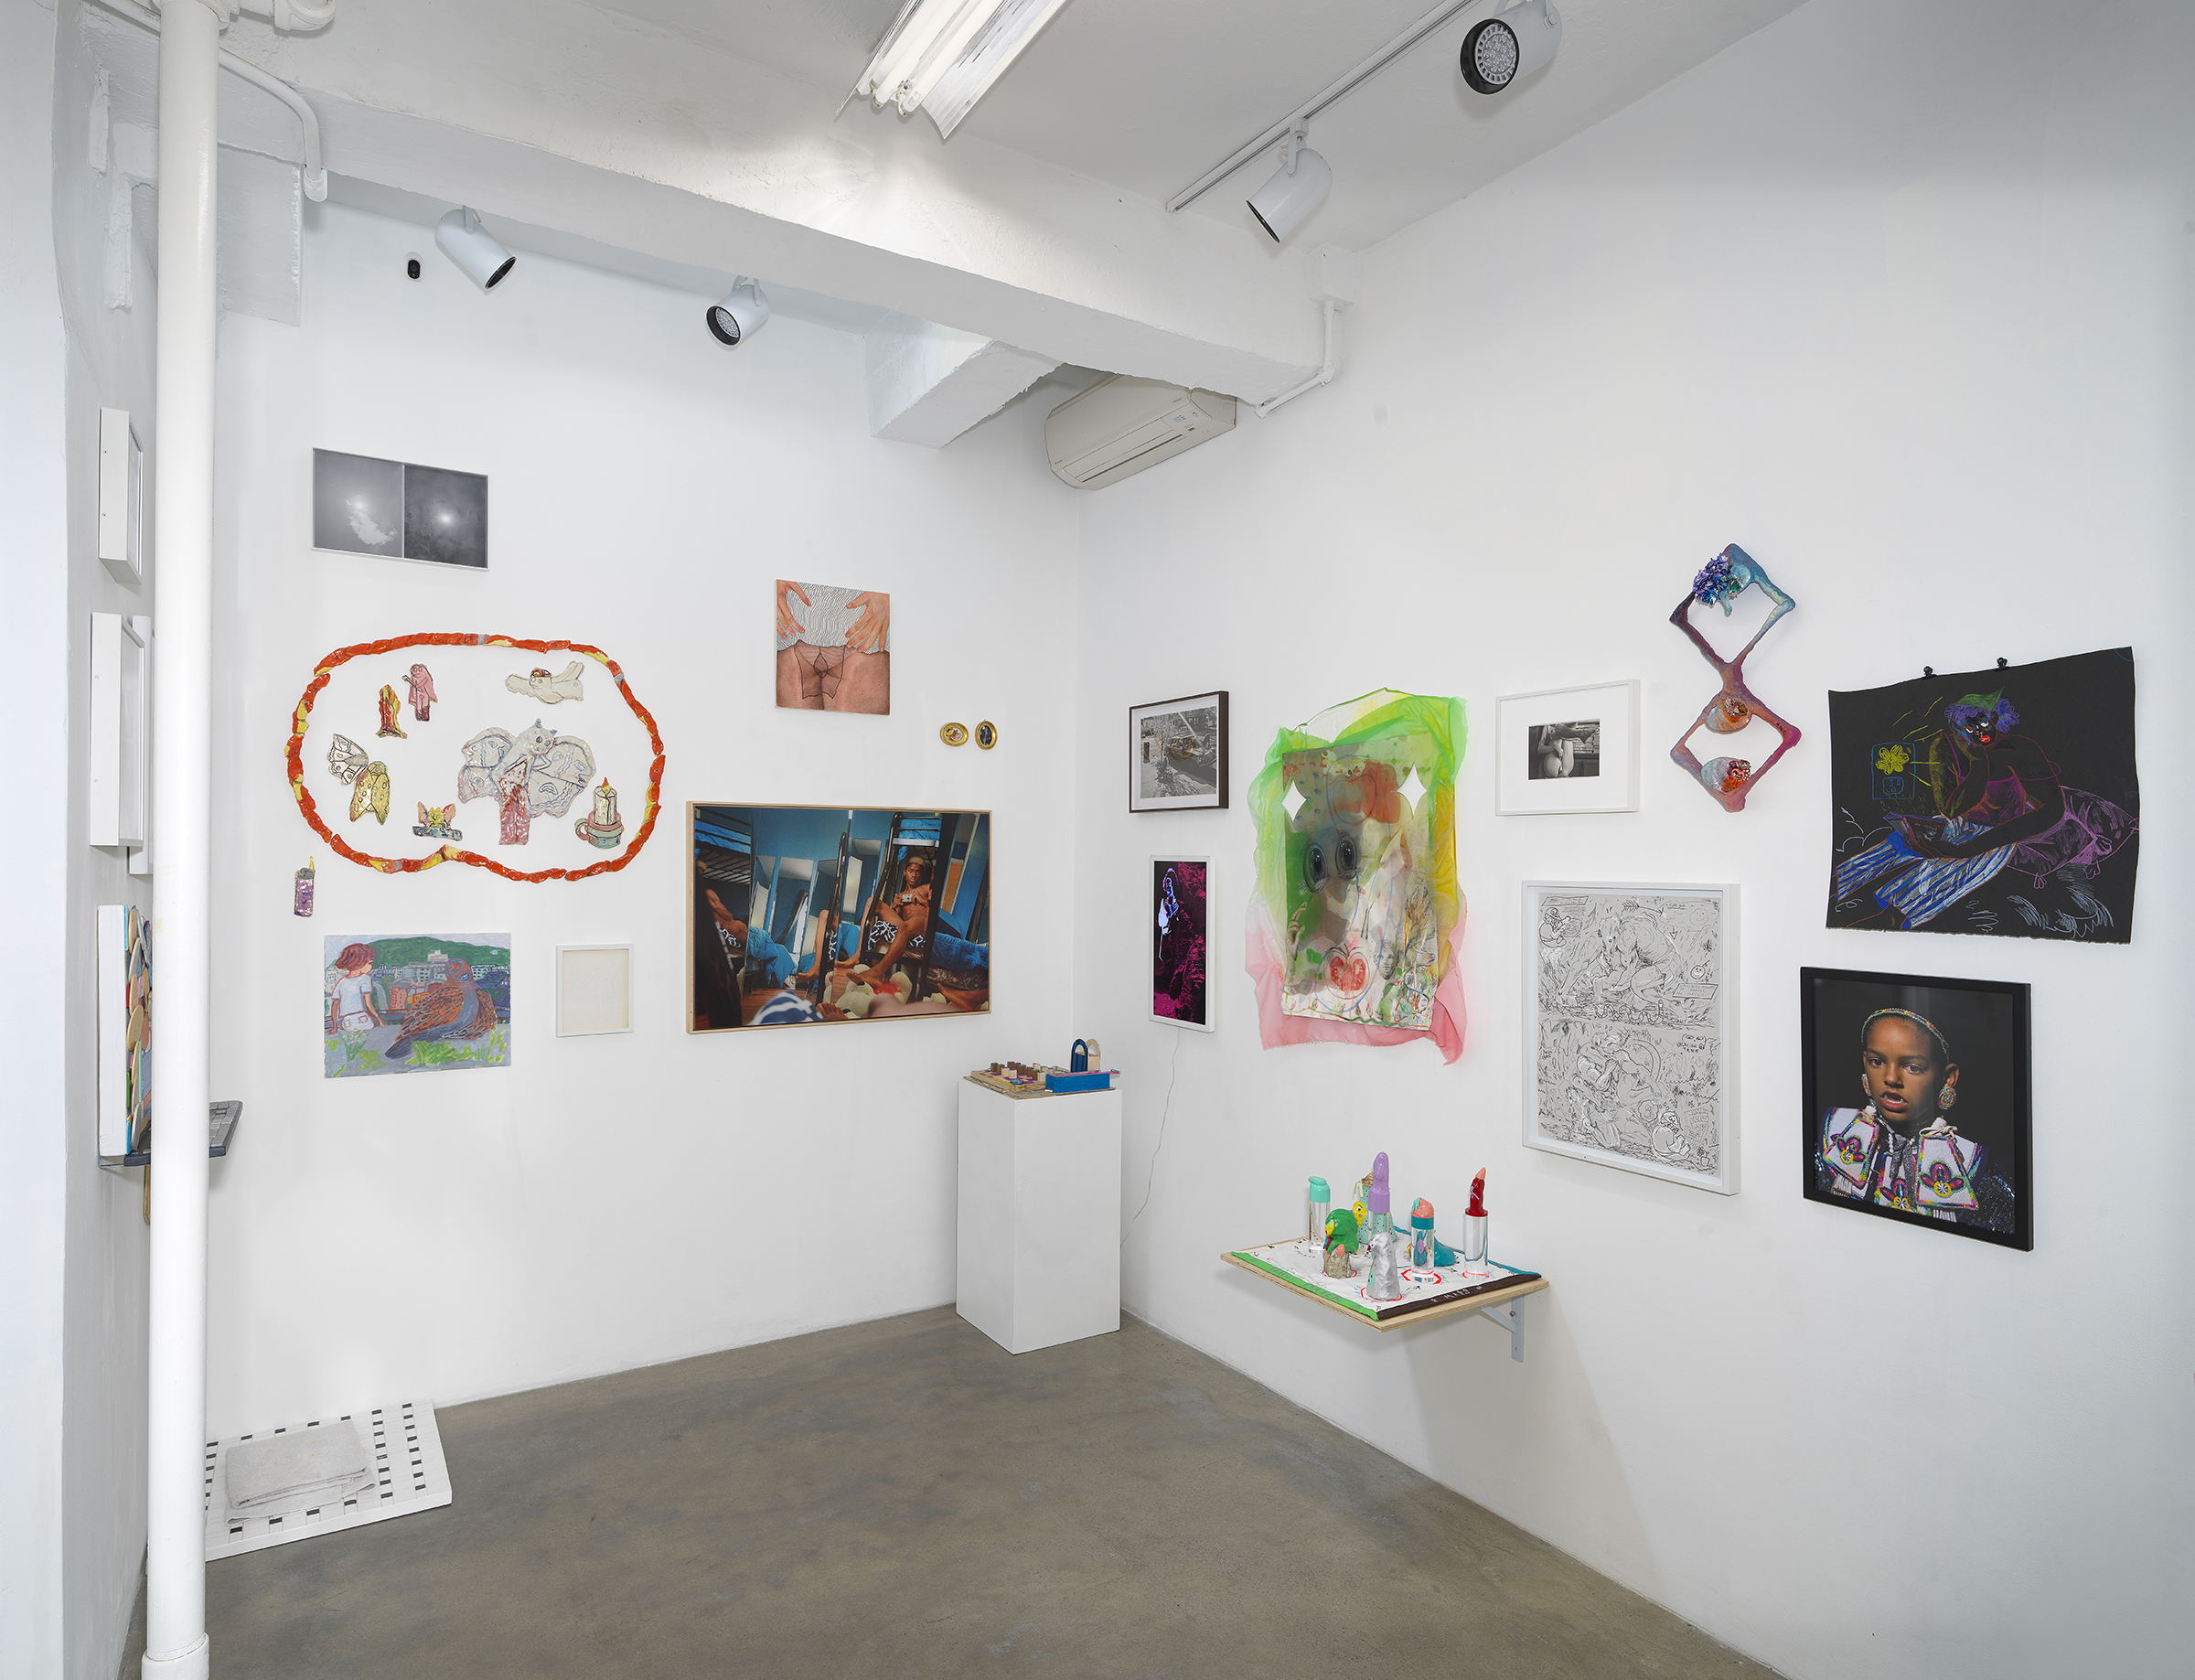 Installation view of 'Can You Dream It' featuring sculptures and salon-style hanging of multimedia works by various artists